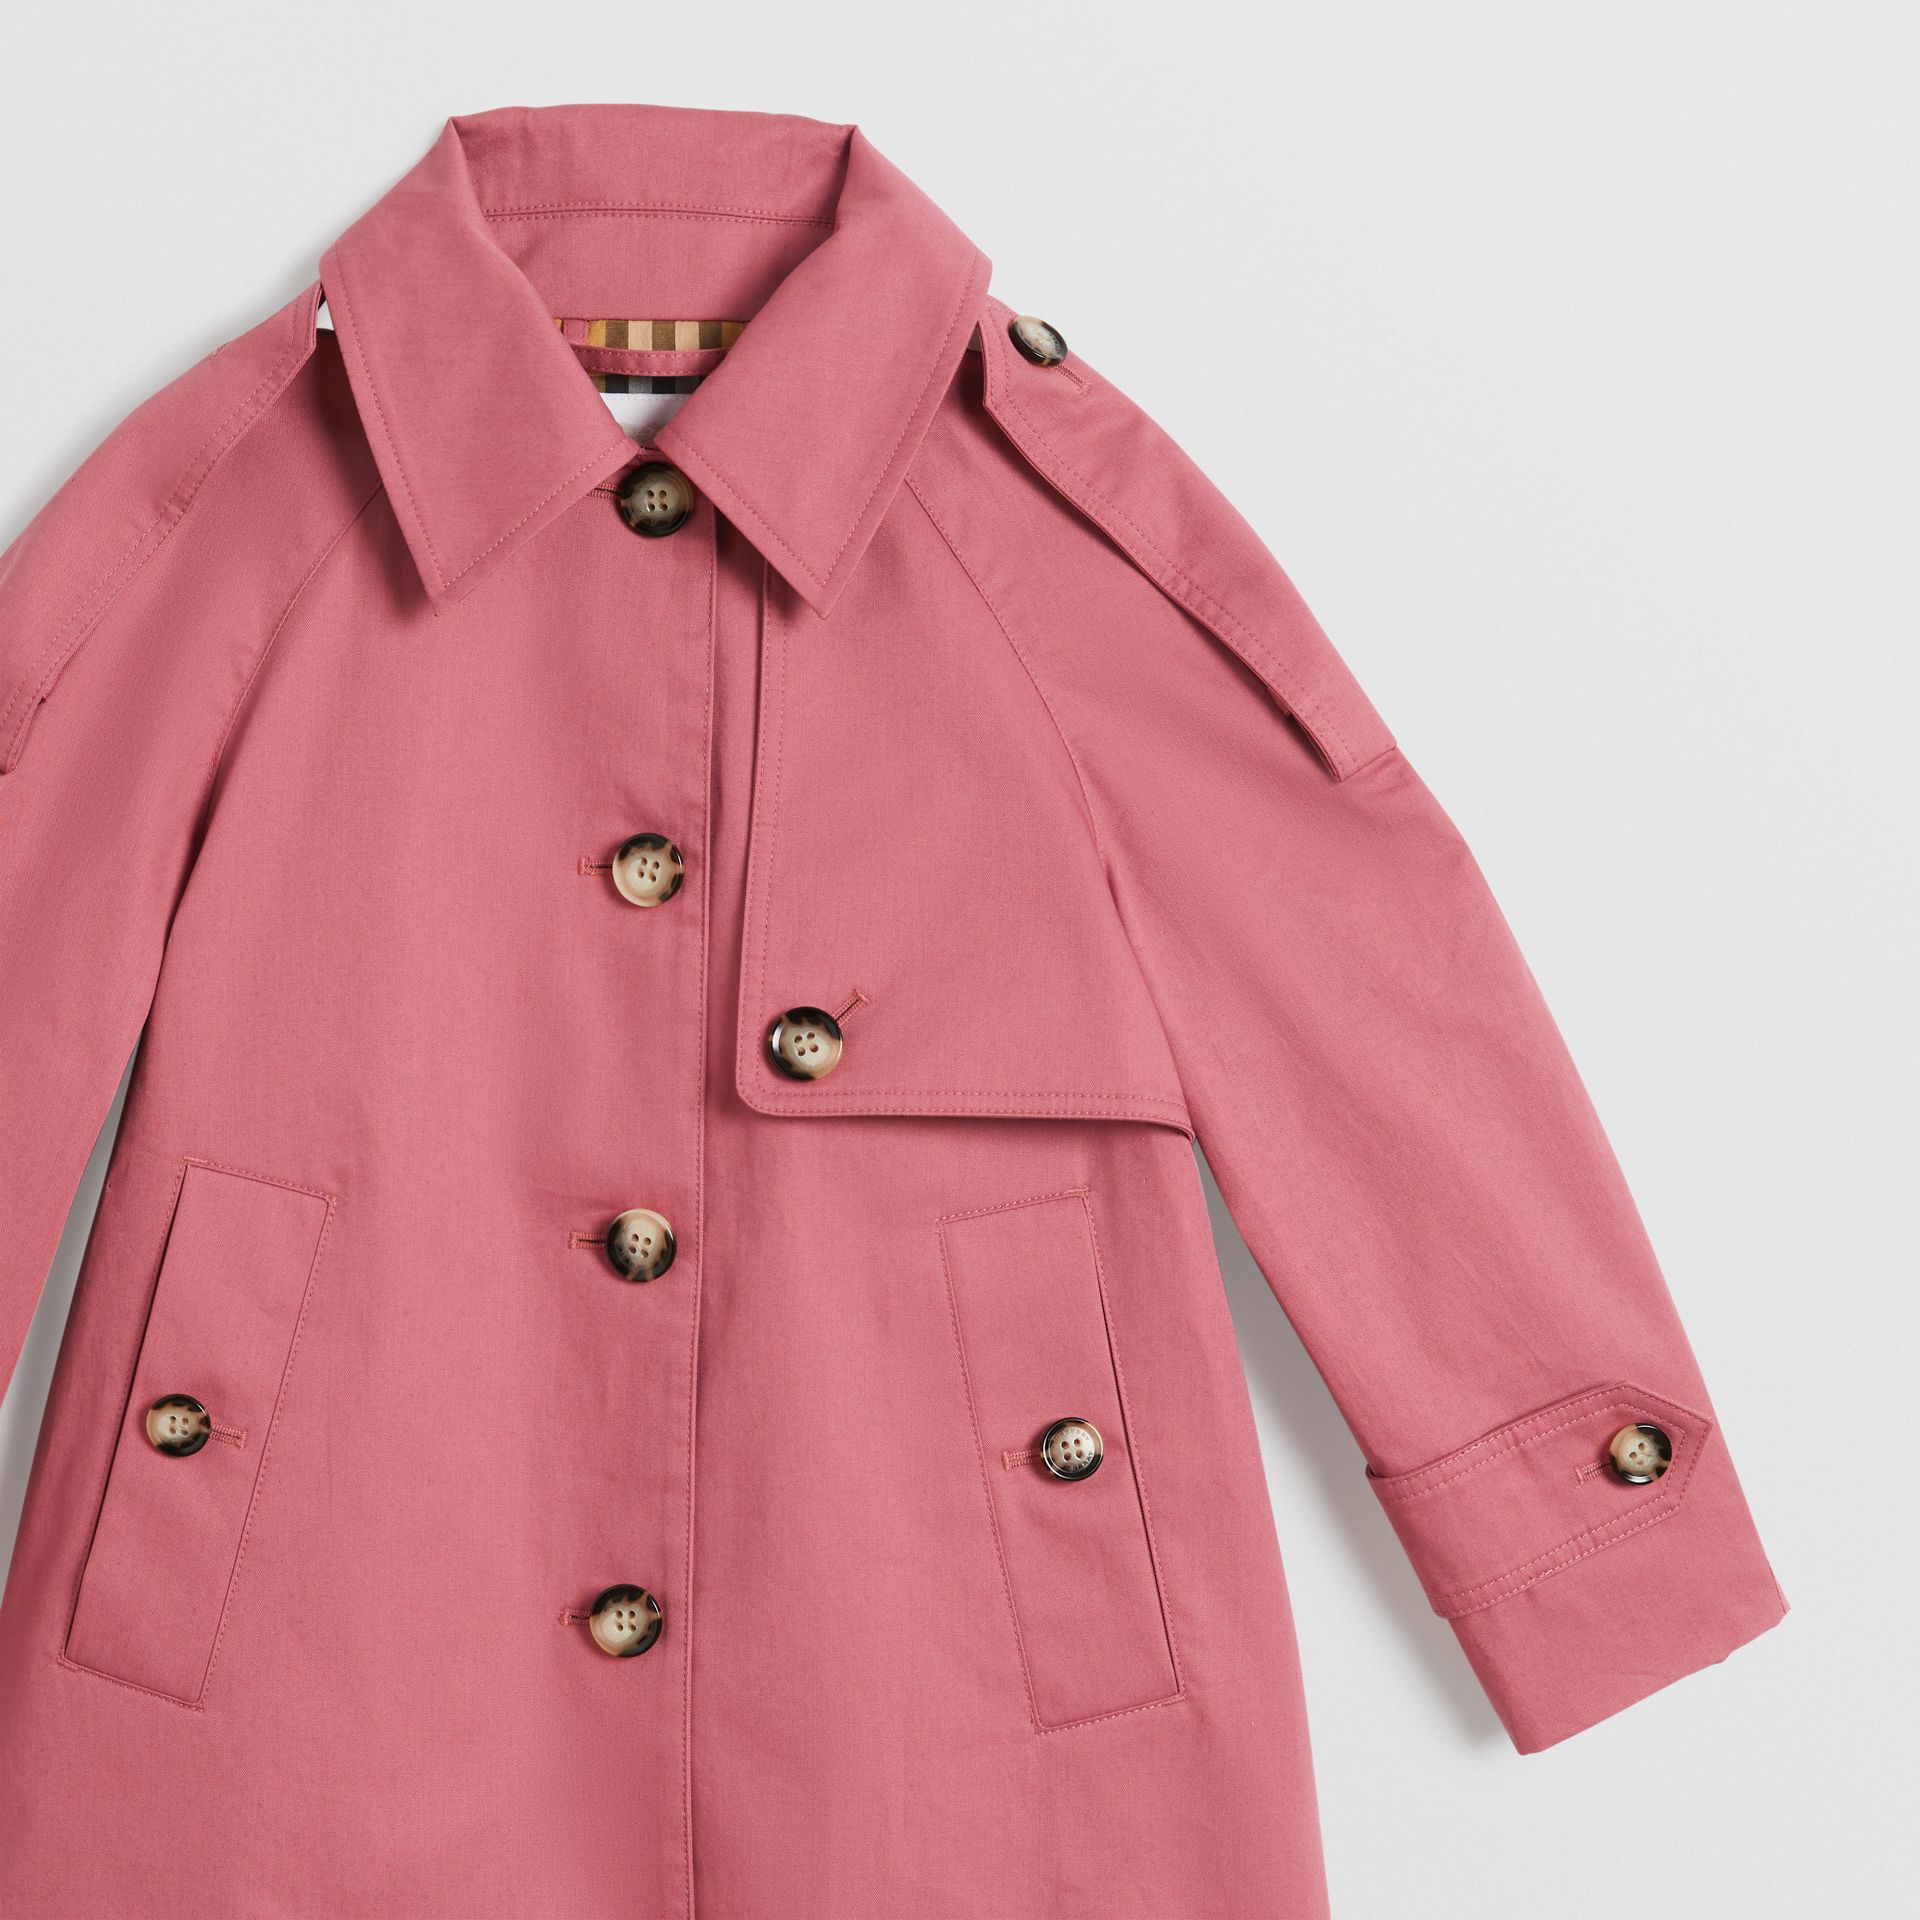 Showerproof Cotton Reconstructed Trench Coat in Rose Pink | Burberry - gallery image 5